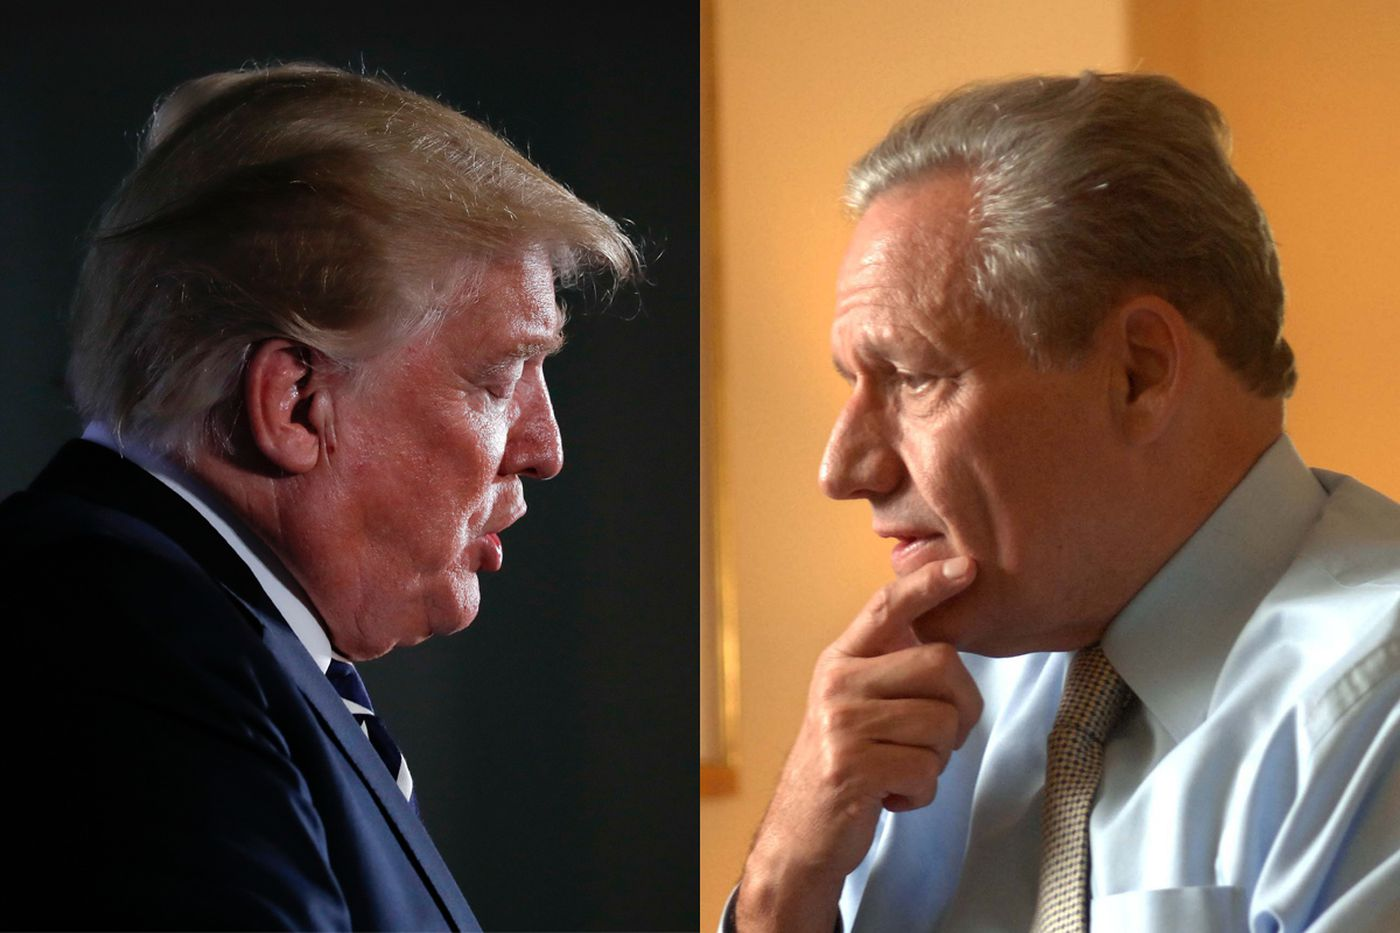 Trump to Woodward: 'Sounds like this is going to be a bad one'